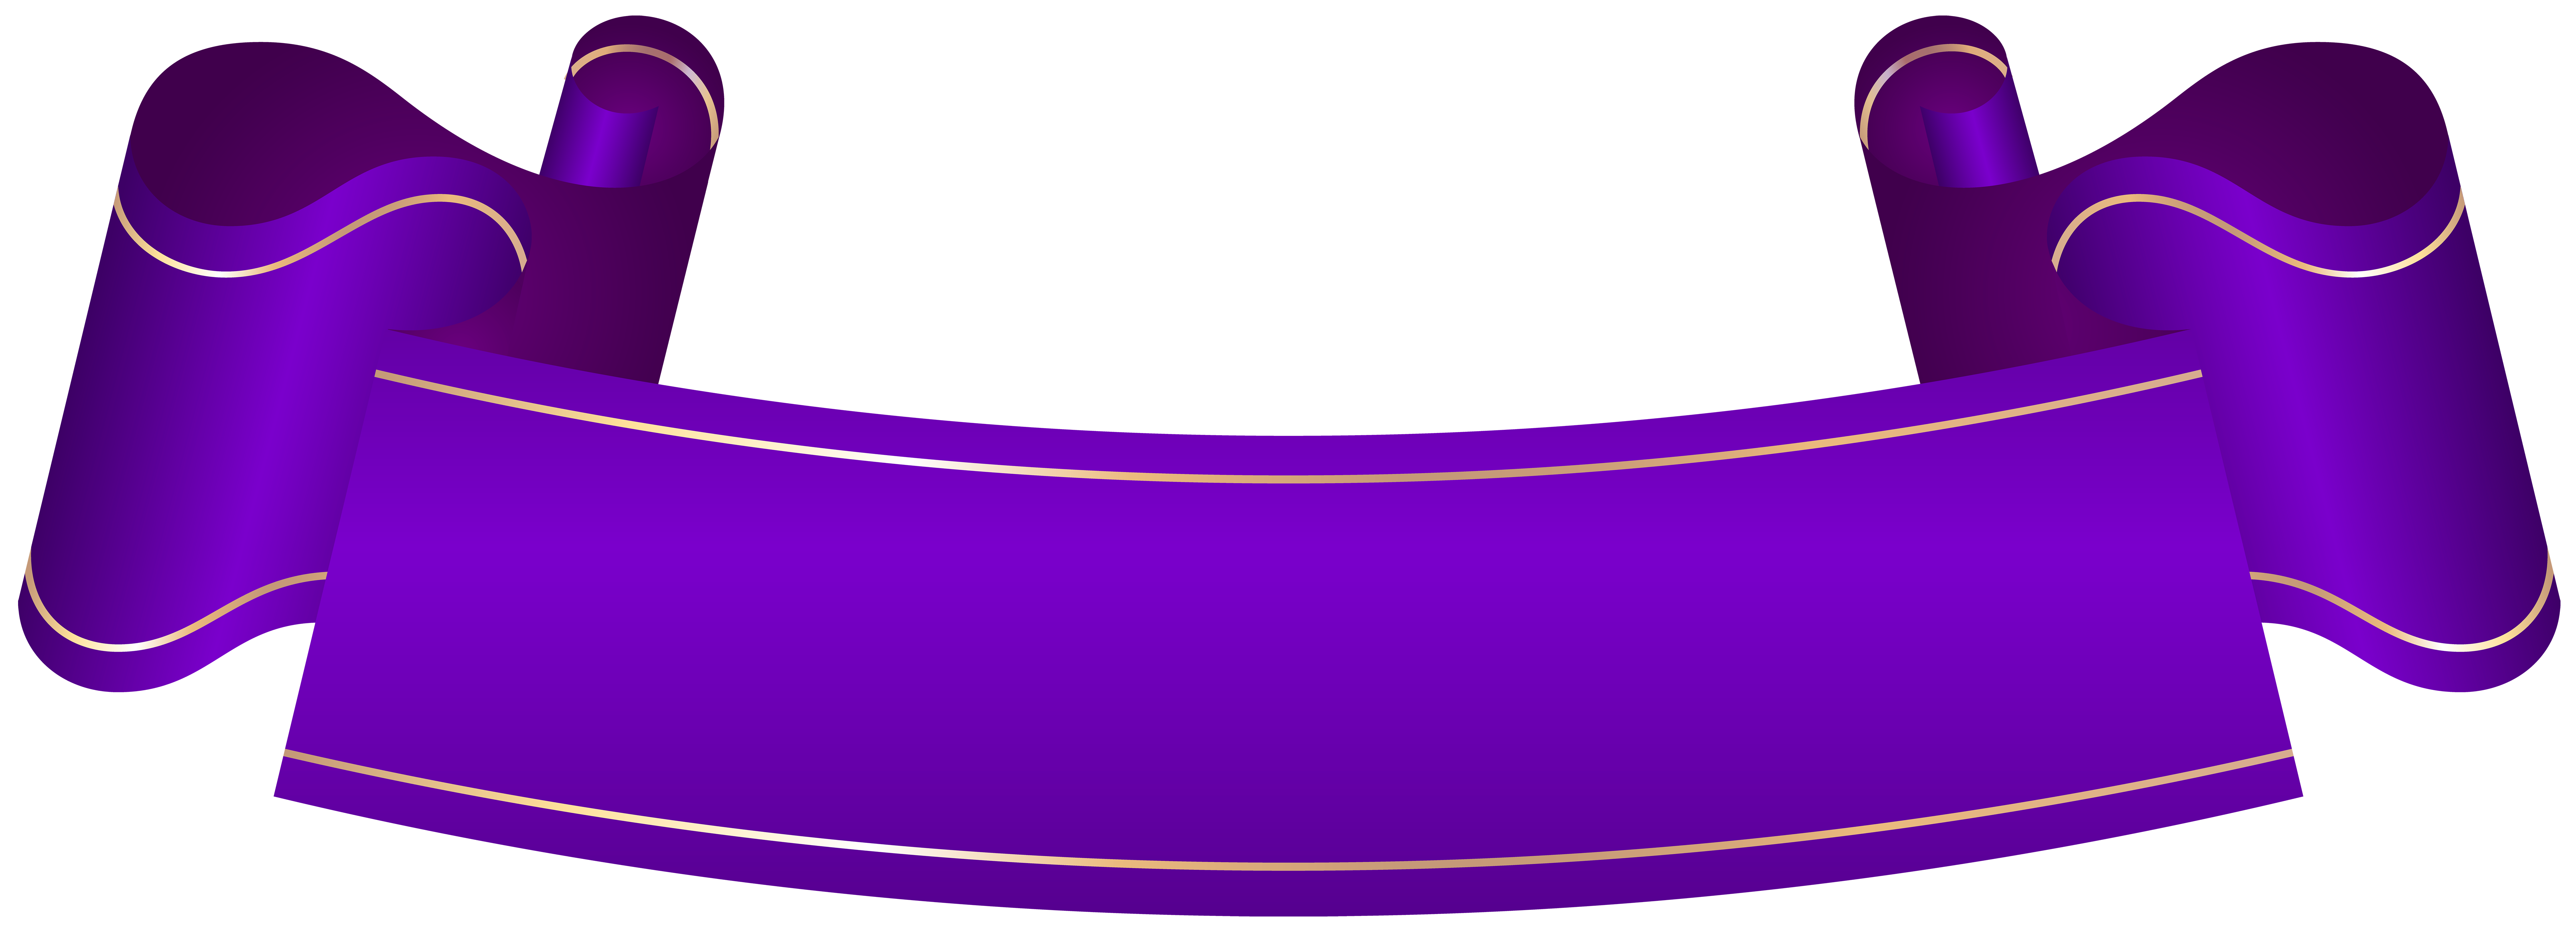 Purple banner png. Transparent clip art gallery